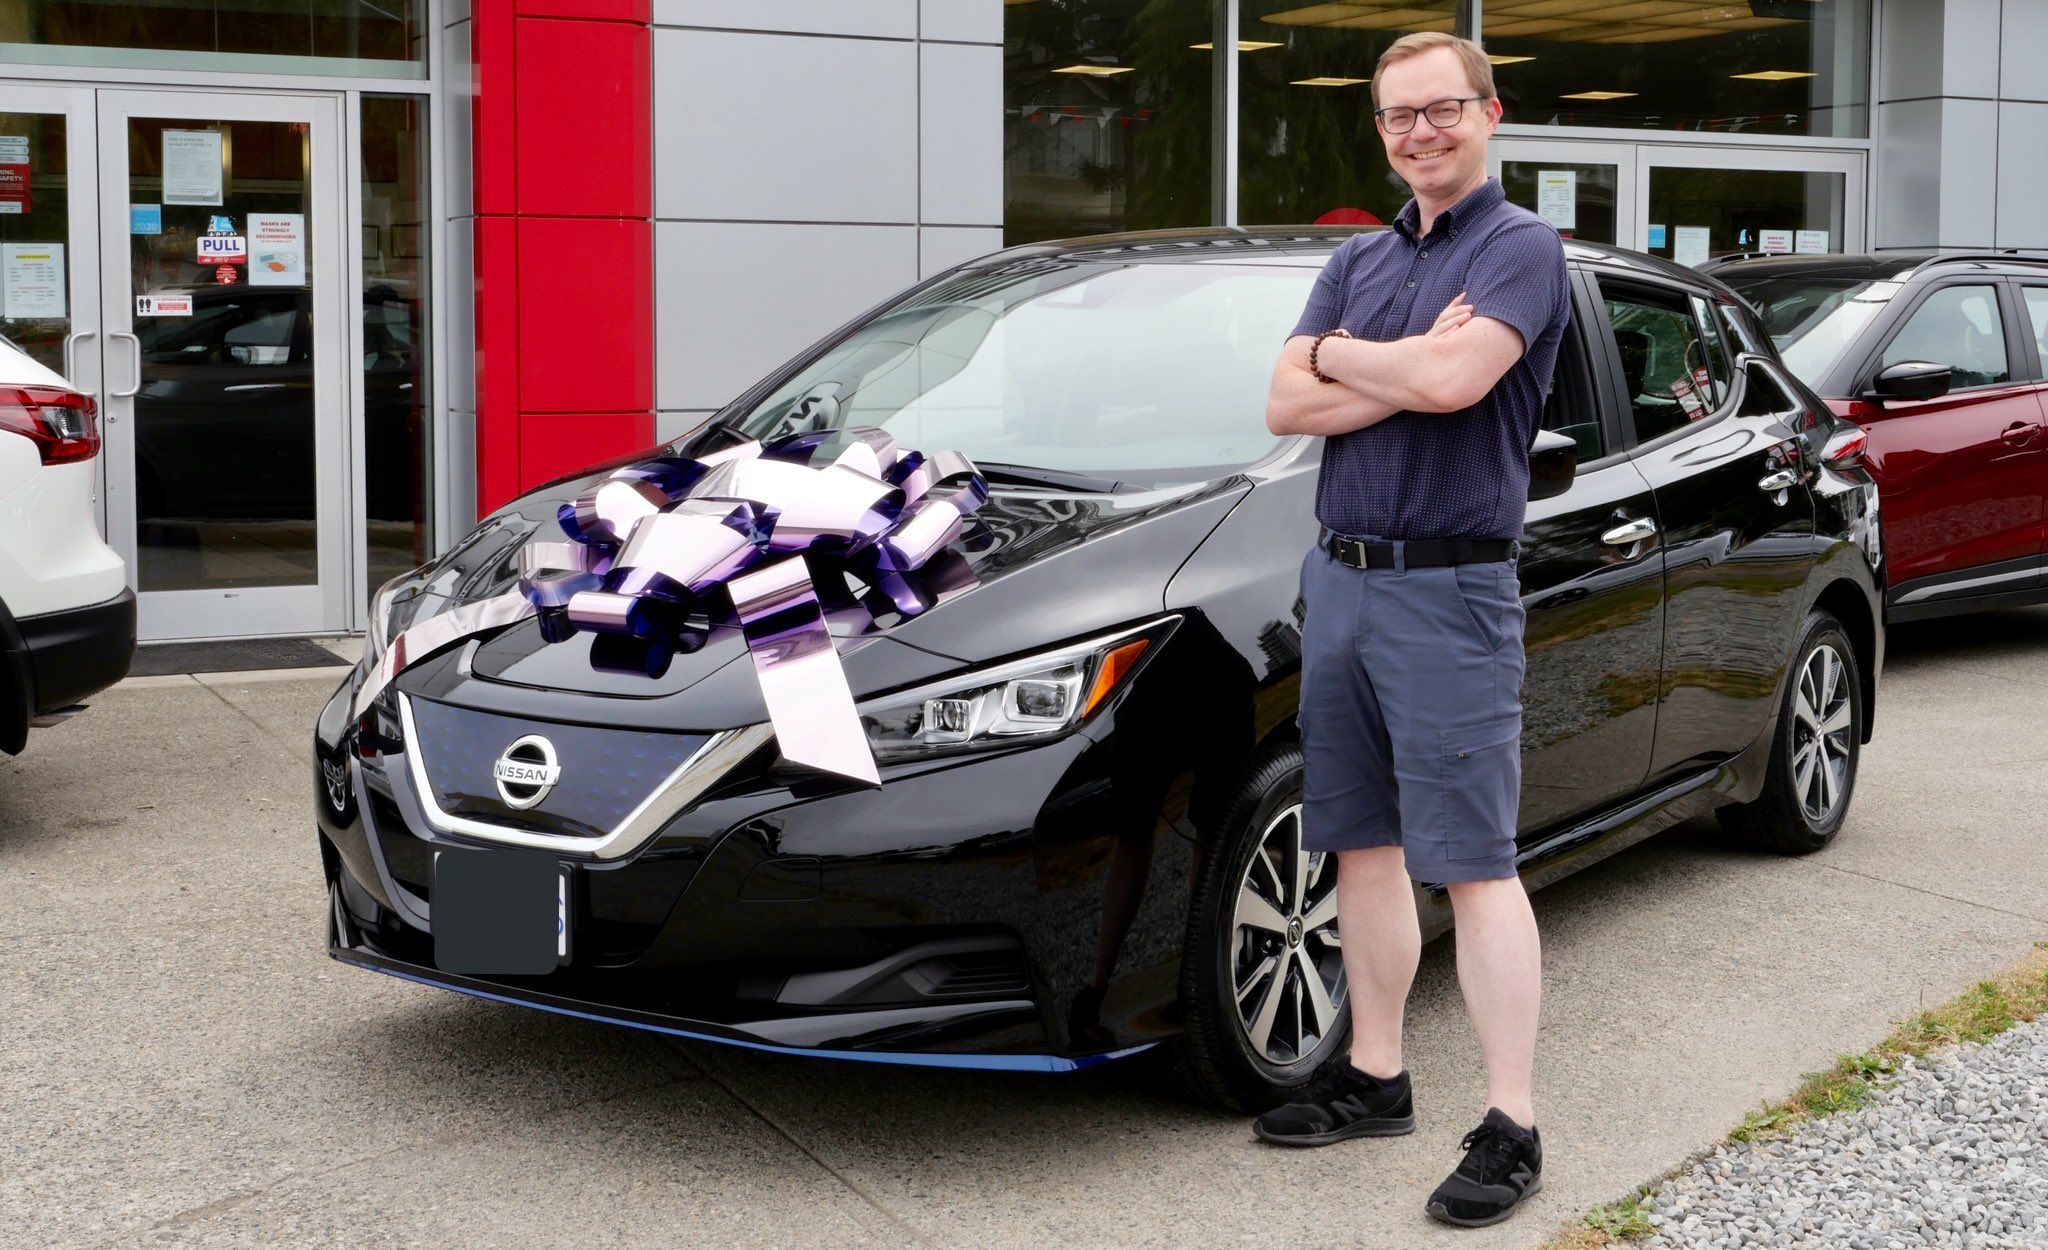 Chad standing in front of new car with a giant novelty bow on the hood